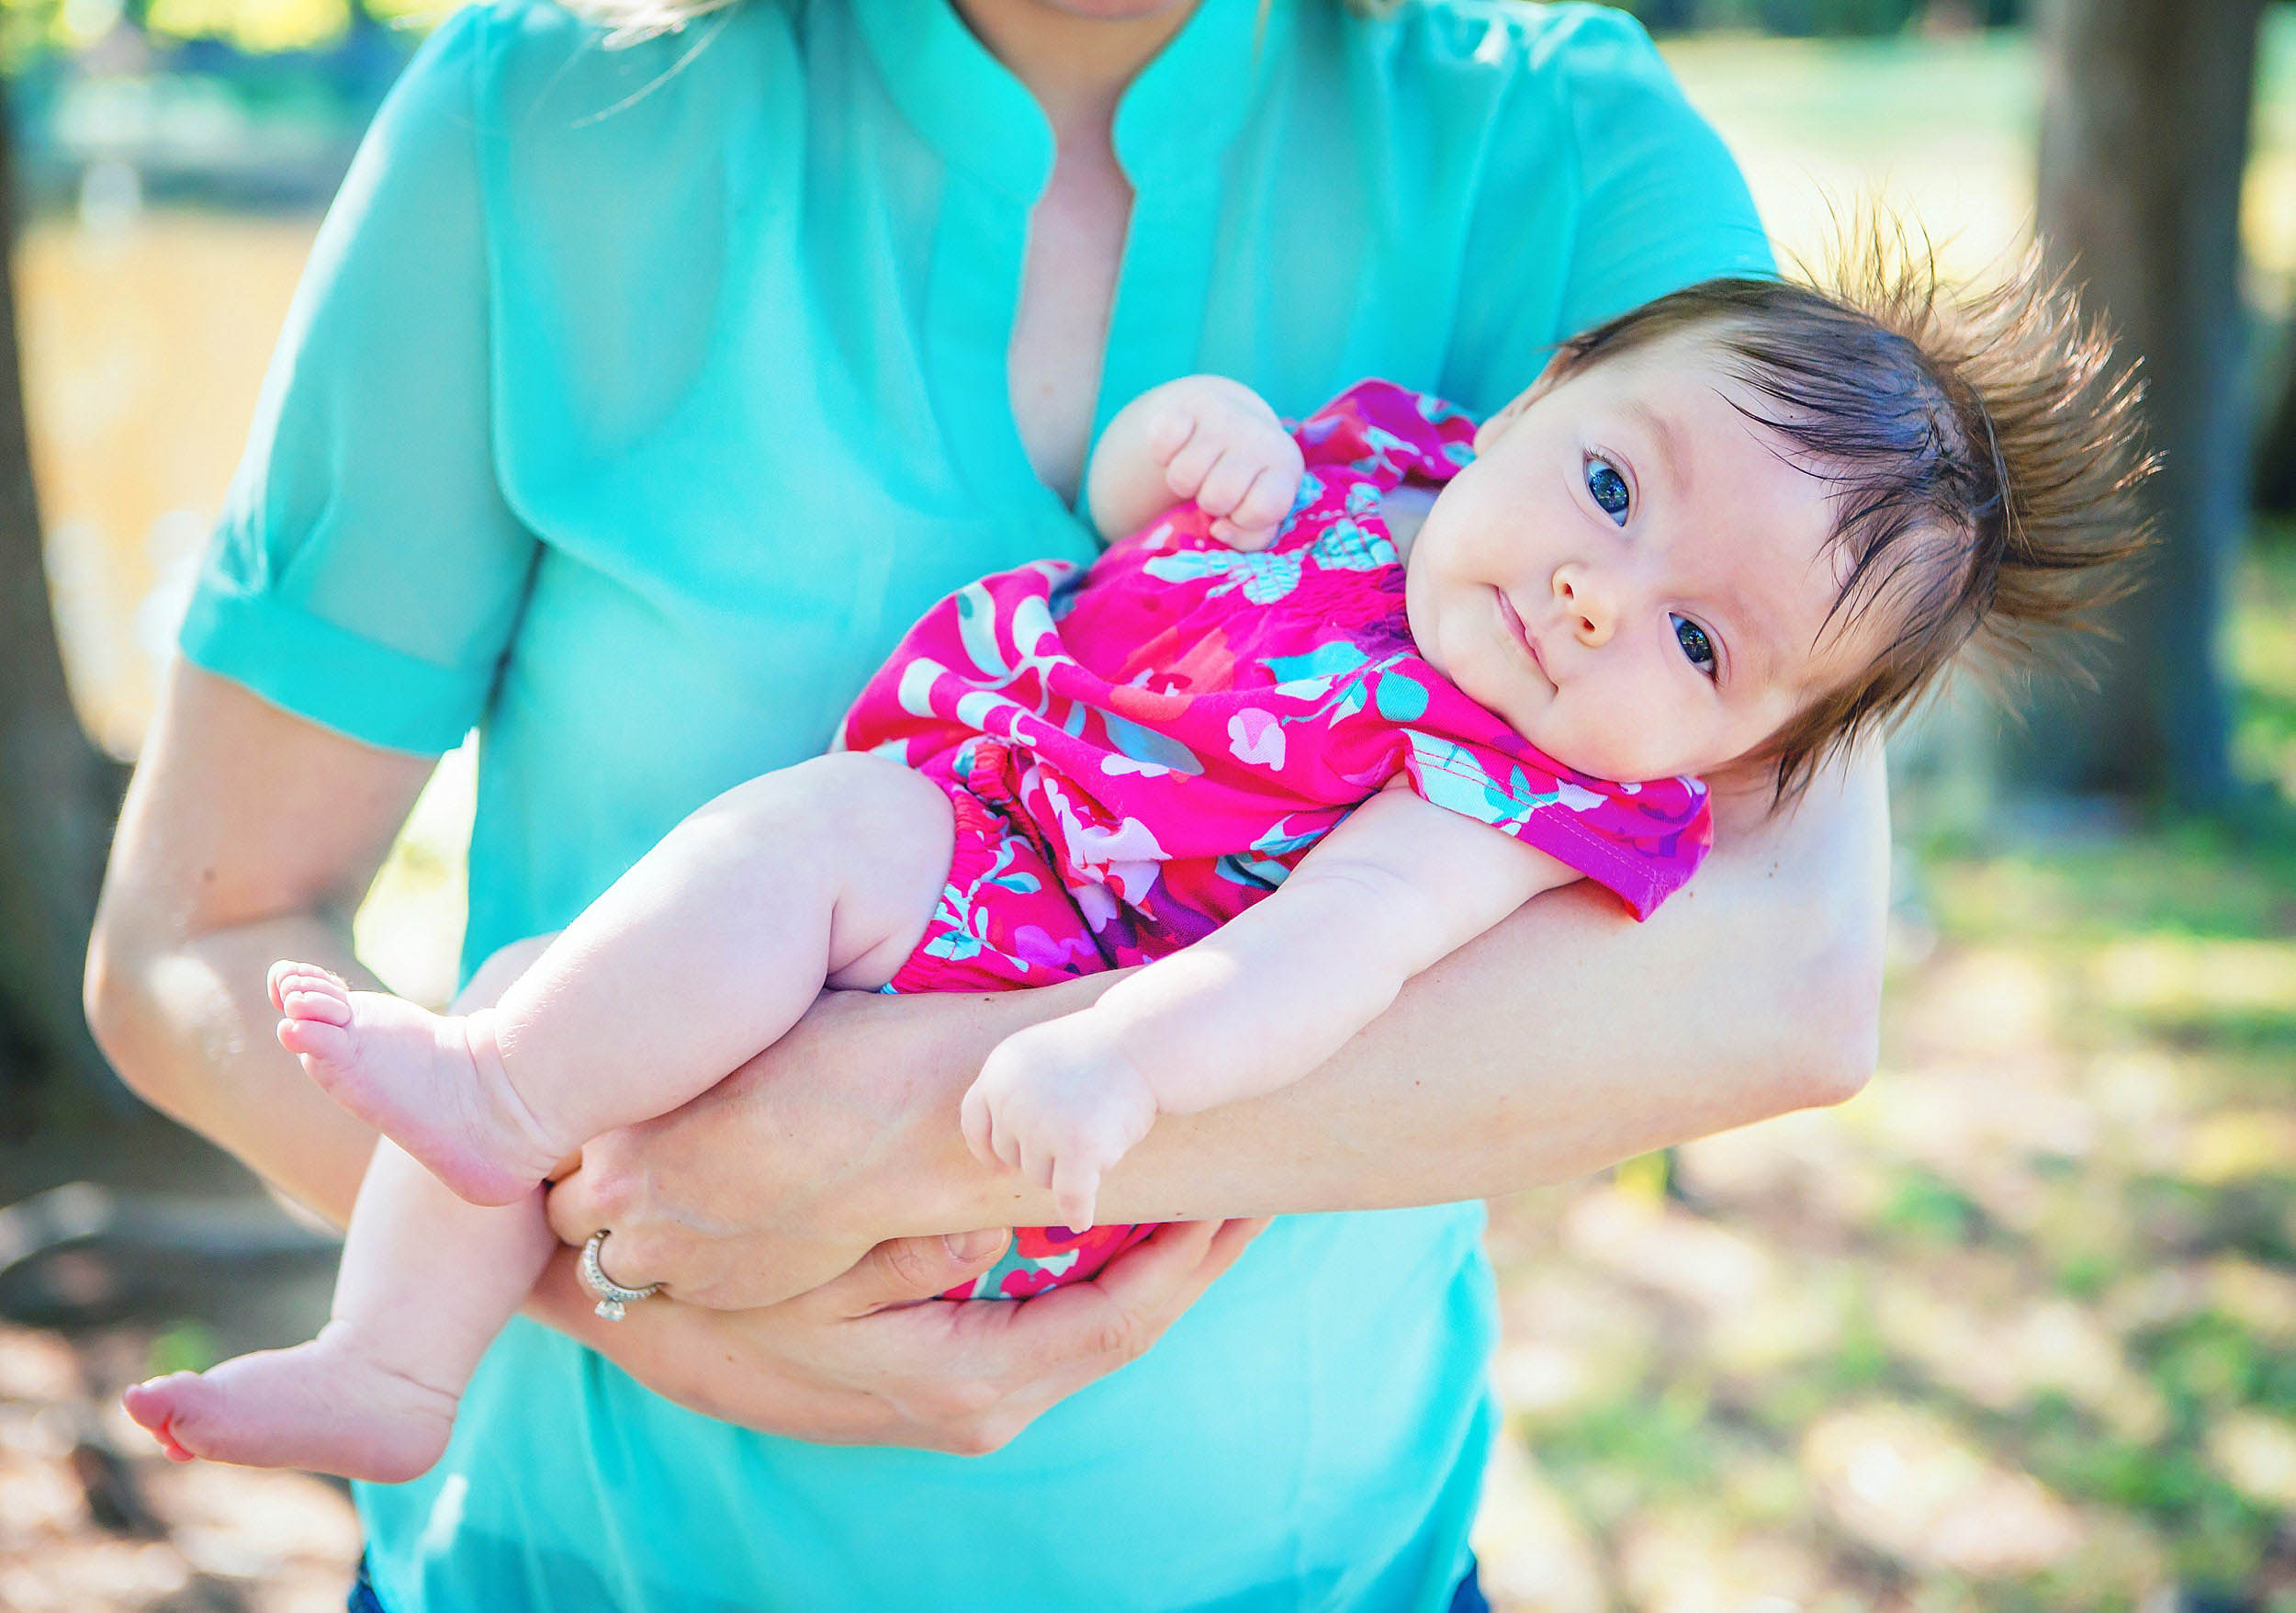 Funny portrait of infant with amazing hair in mom's arms in The Woodlands by spryART photography.